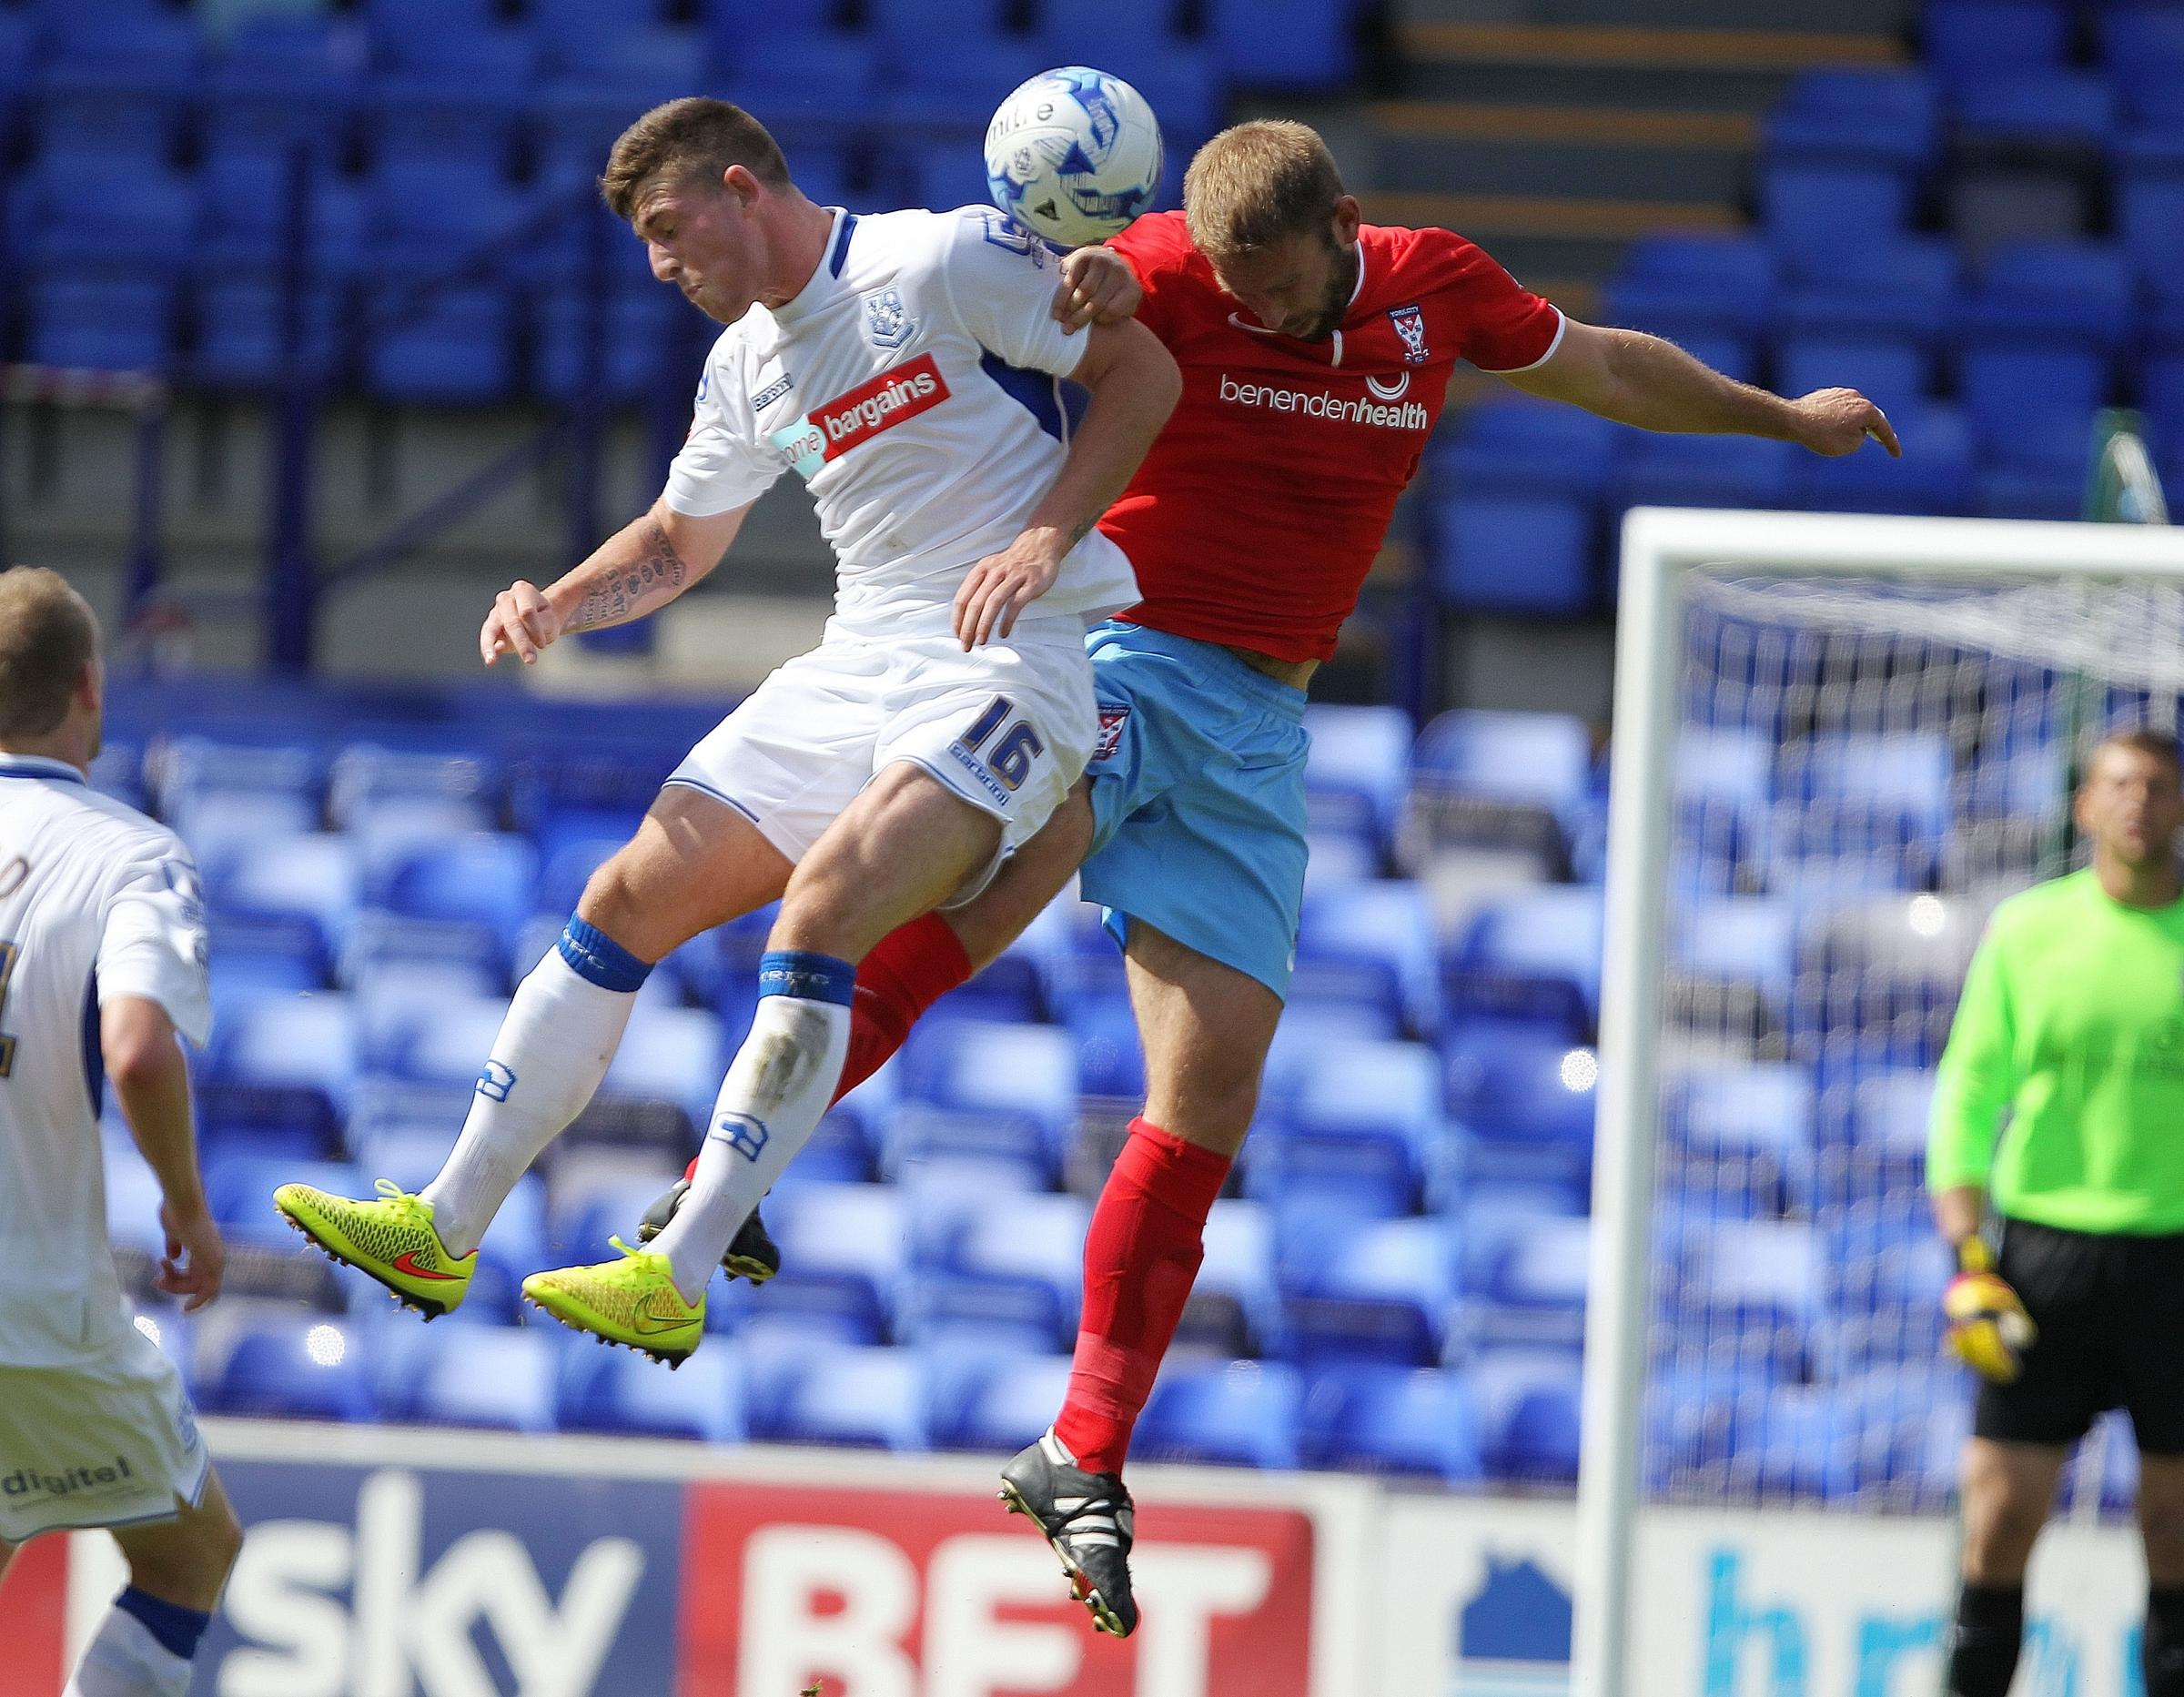 Tranmere Rovers 1, York City 1